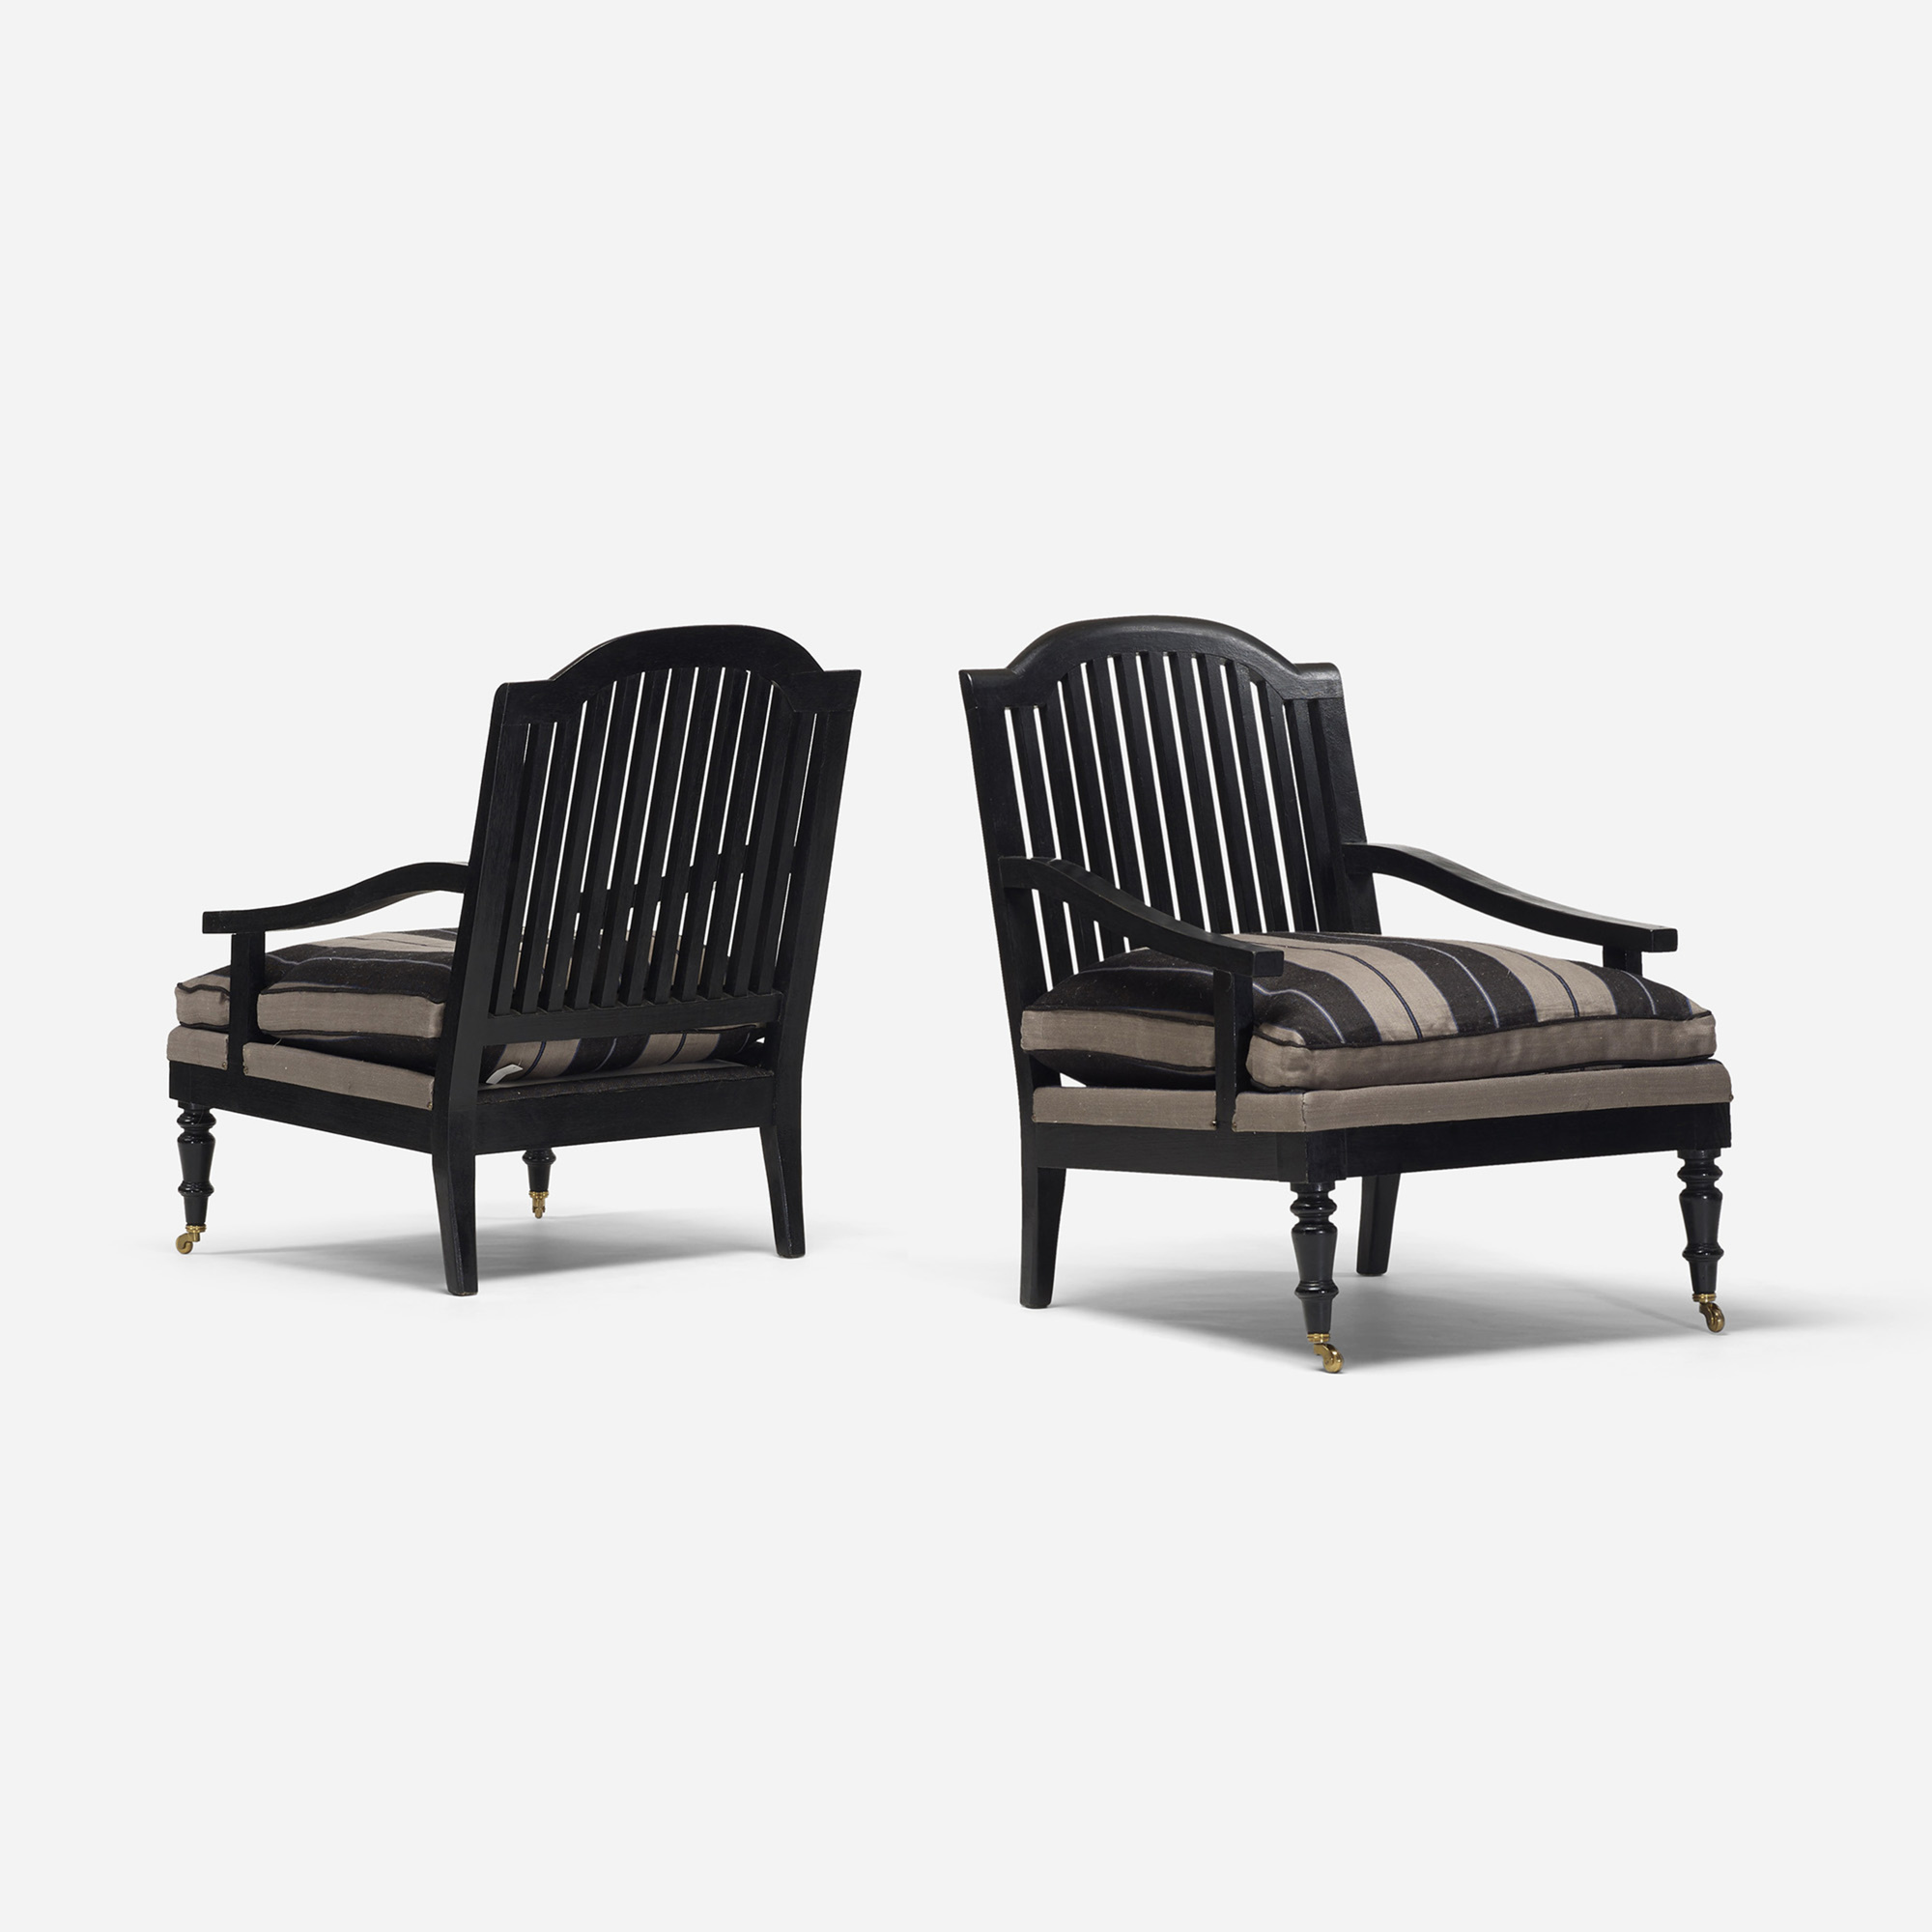 119: American / lounge chairs, pair (1 of 3)